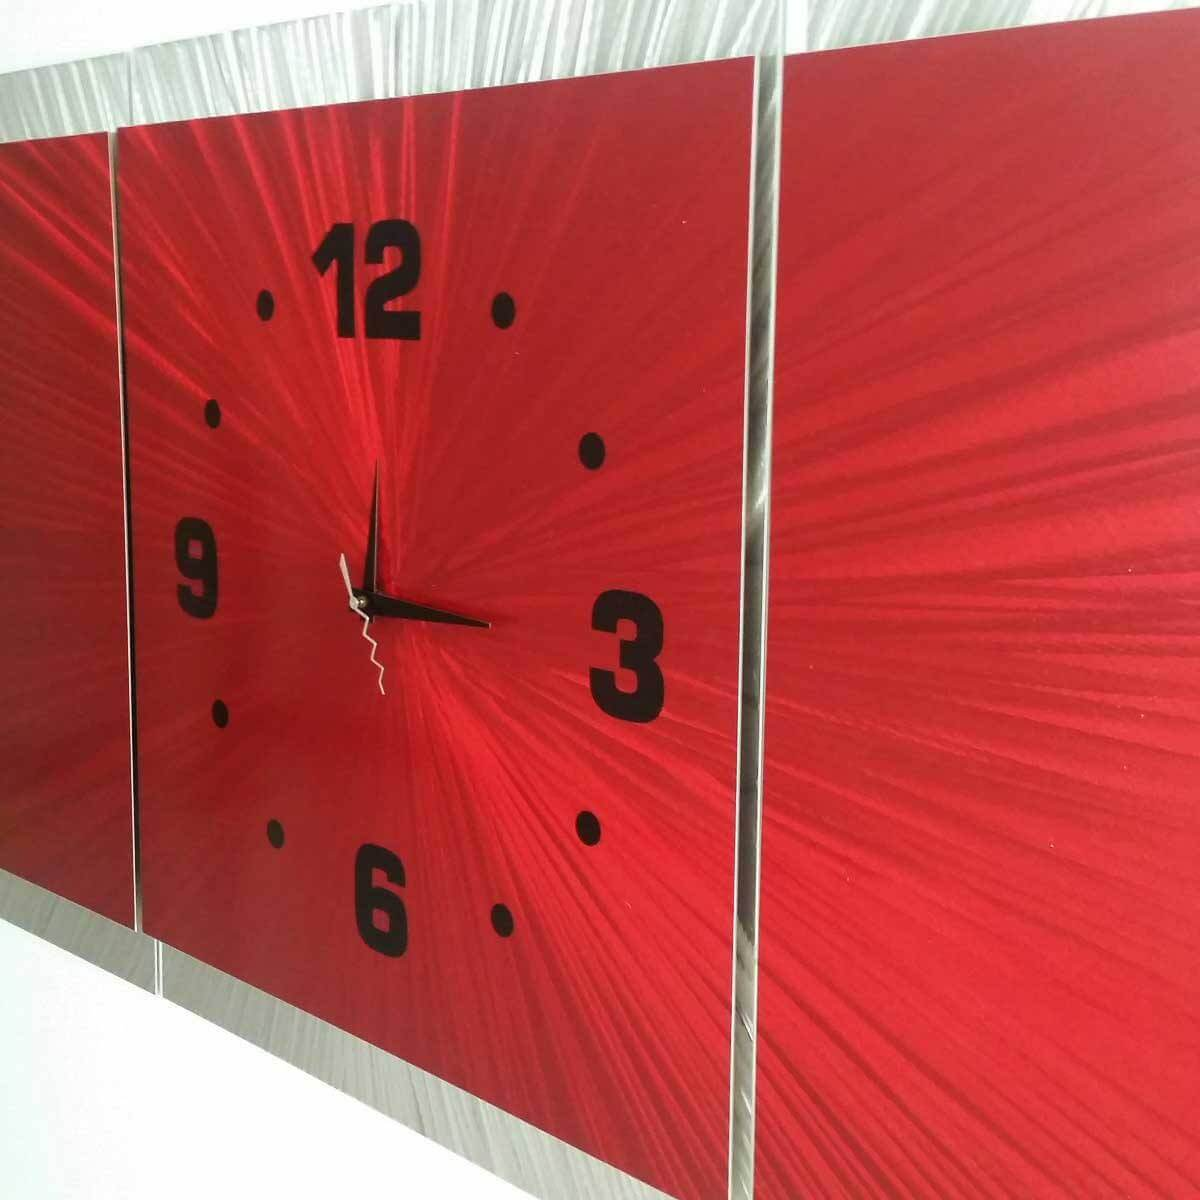 Fullsize Of Large Wall Clock Red